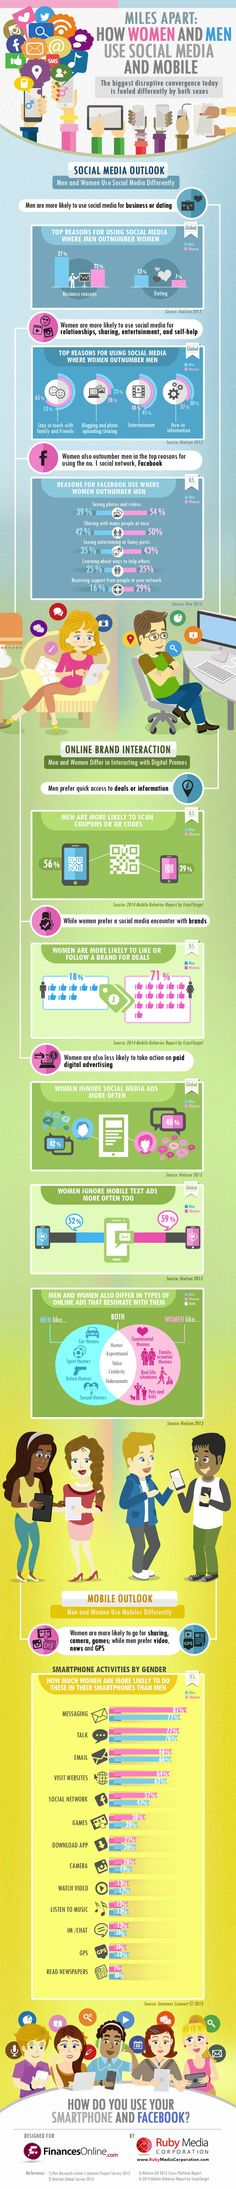 How Men and Women Use Mobile and Social Media Differently #Infographic